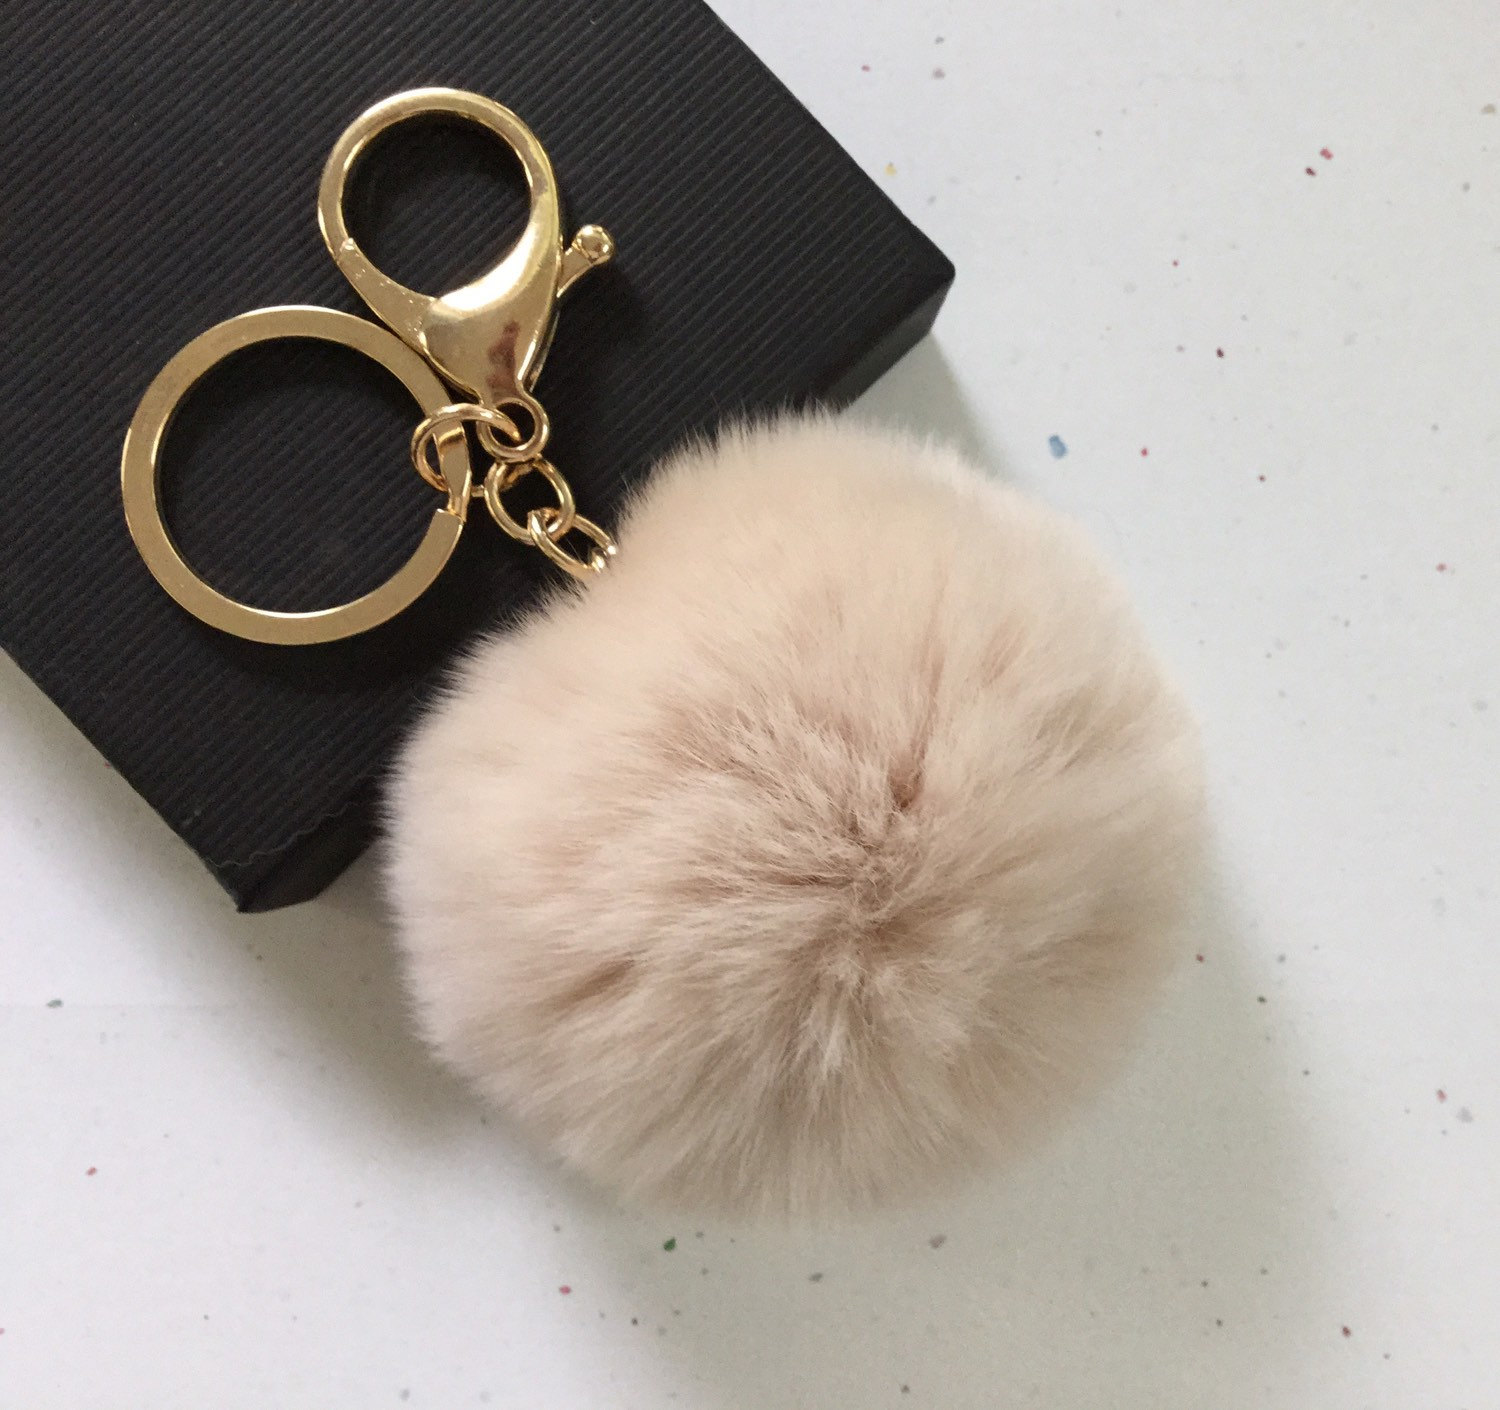 New! Cream Fur pom pom keychain fur ball bag pendant charm on Storenvy 6293bfb6c6d1e